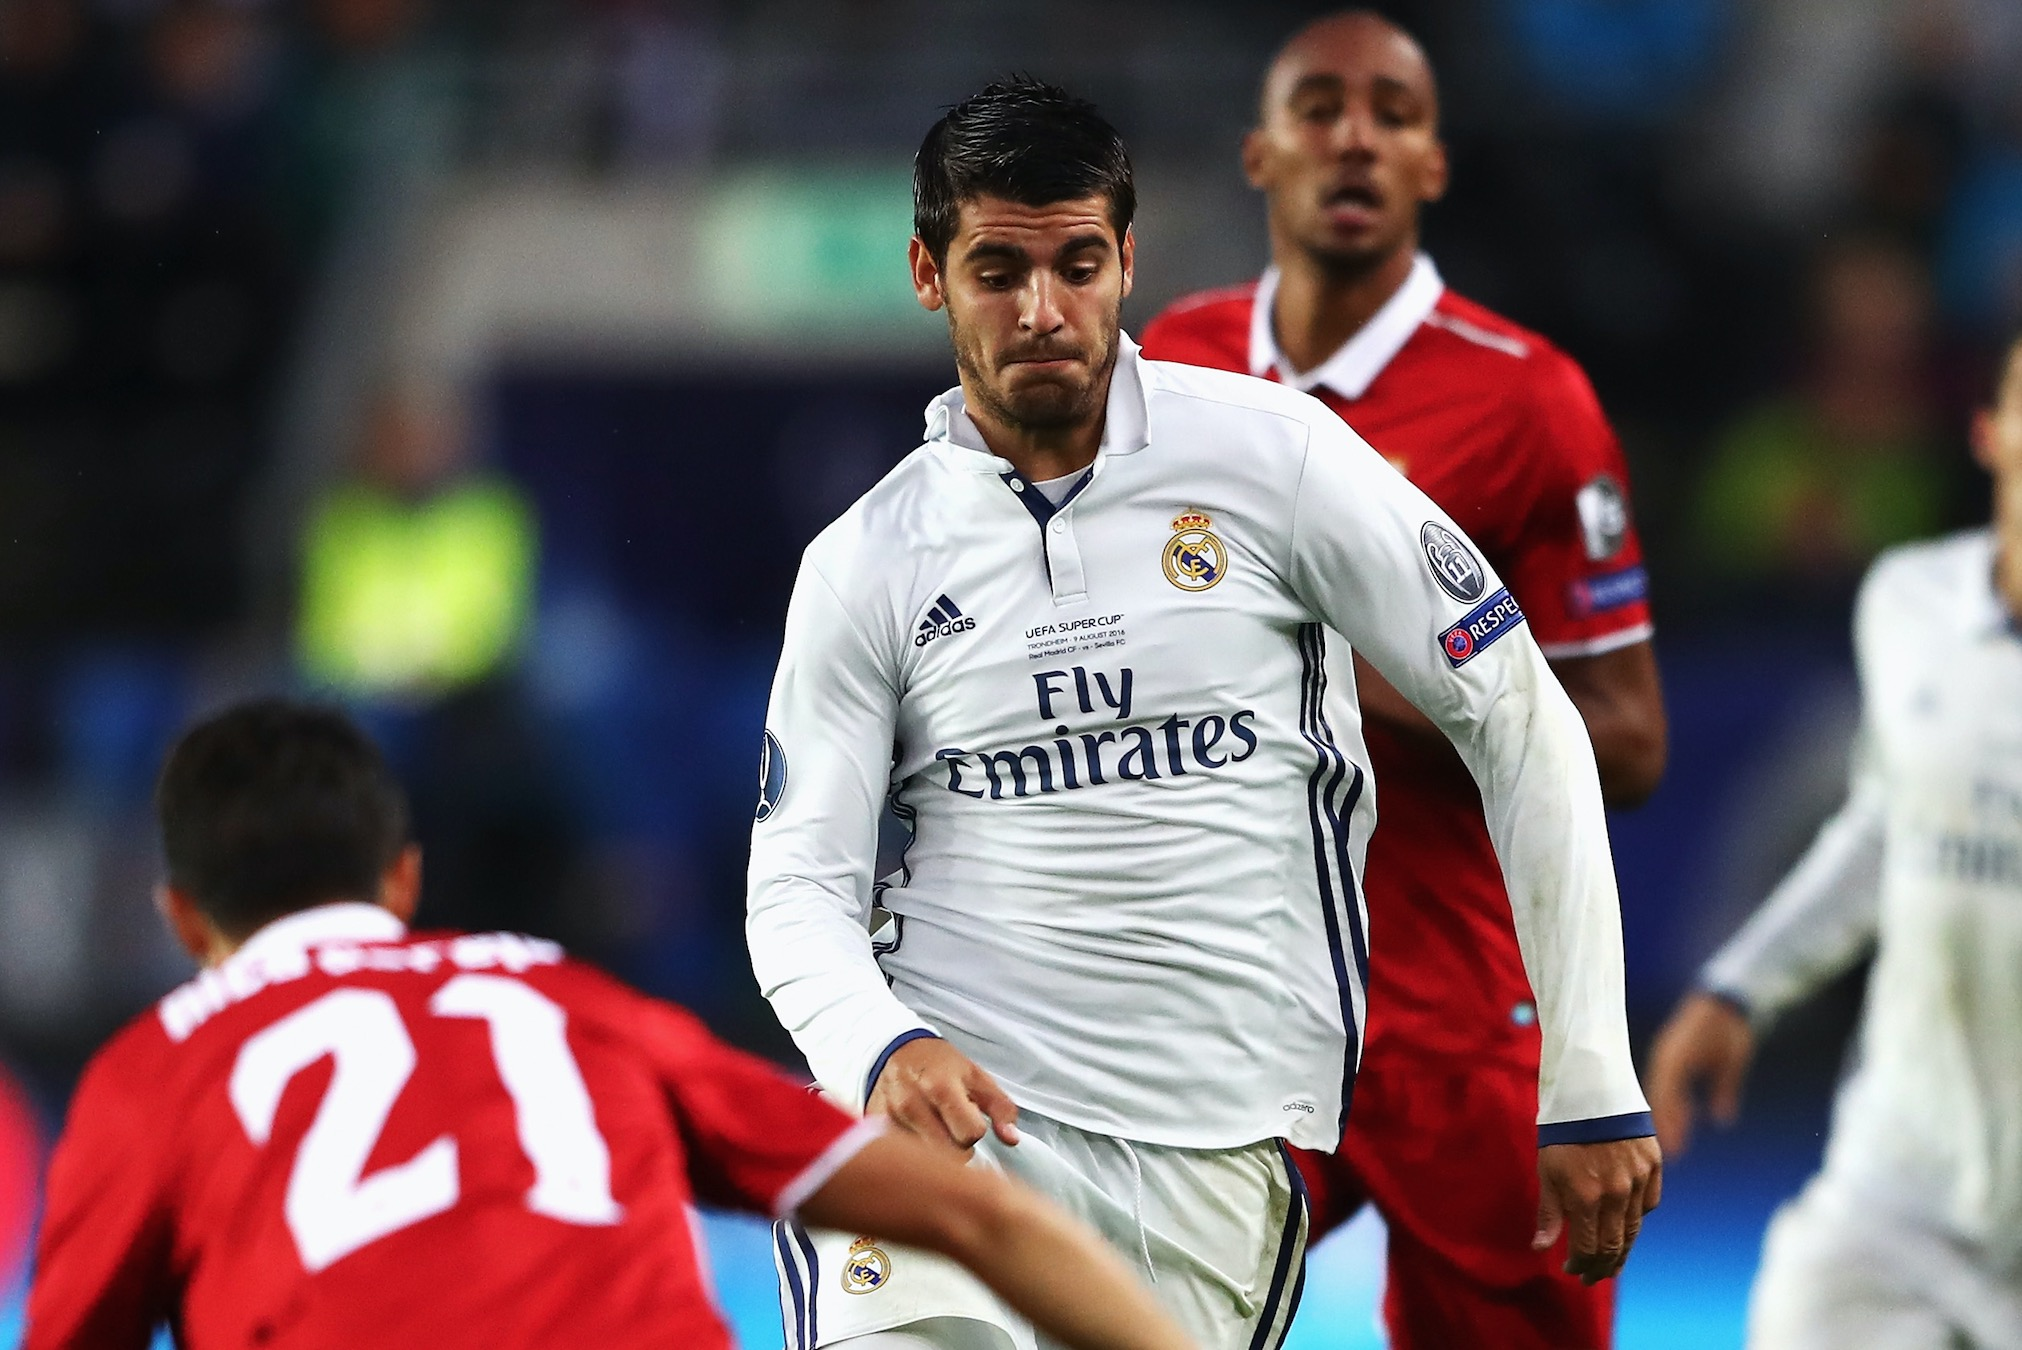 Alvaro-Morata-Real-Madrid-Crop